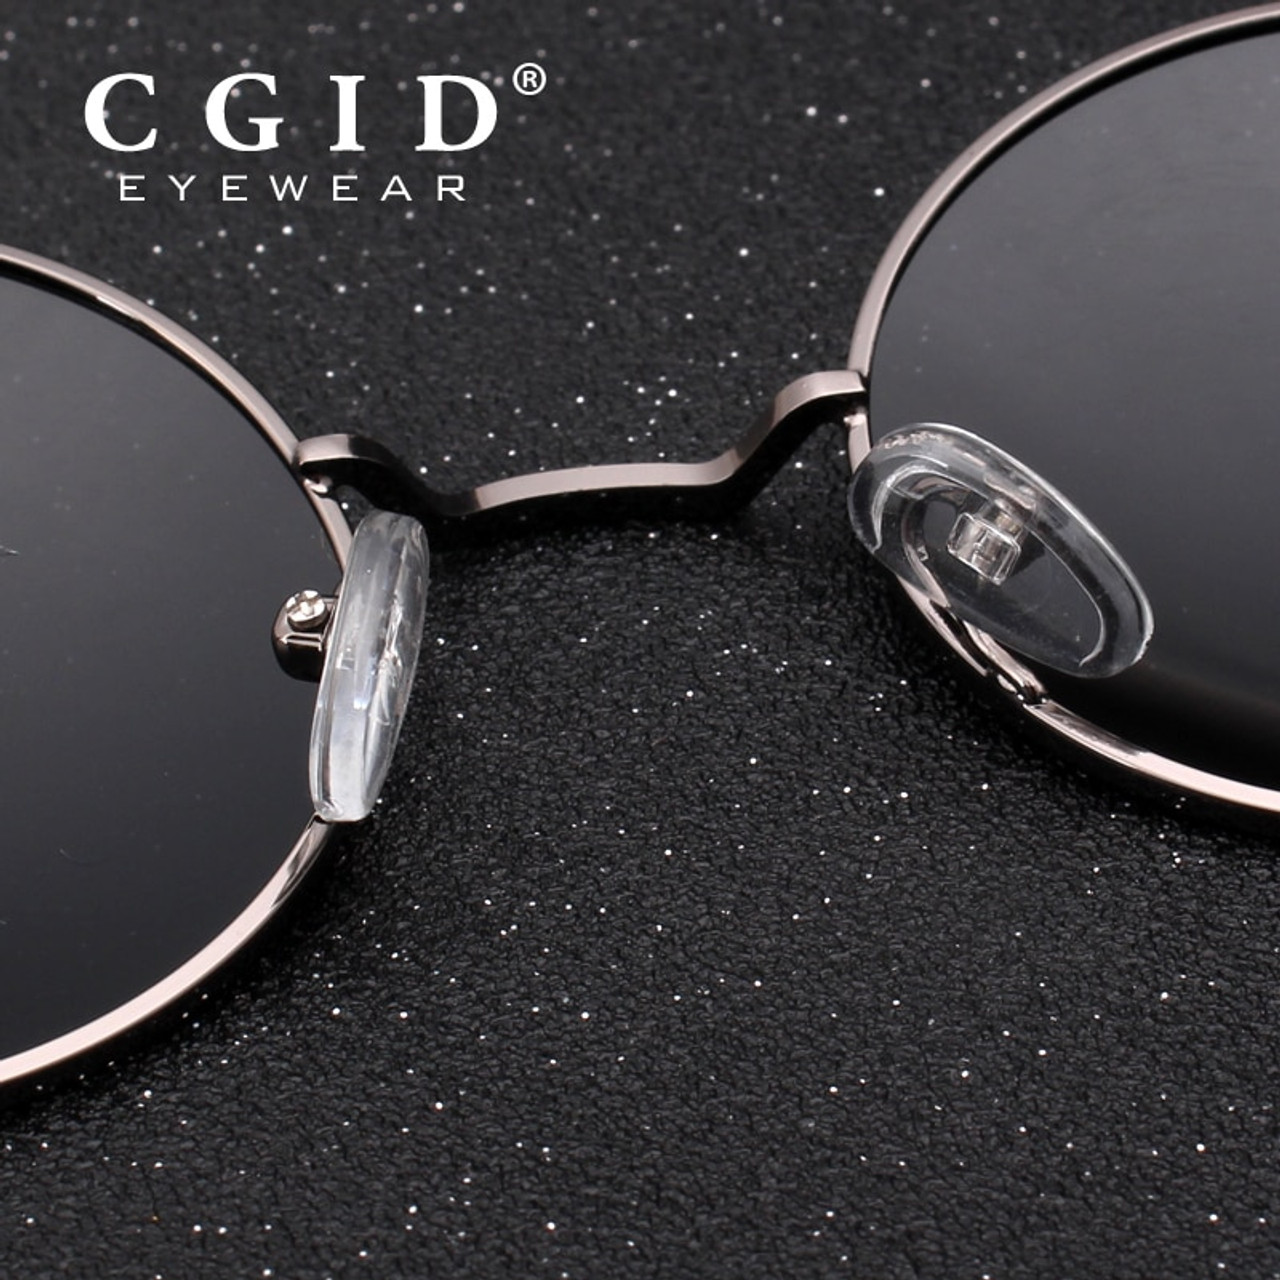 8275a4a43c7 ... CGID 2018 Round Lennon Sunglasses Polarized Retro Vintage Inspired  Metal Circle Black Sun glasses for Men ...